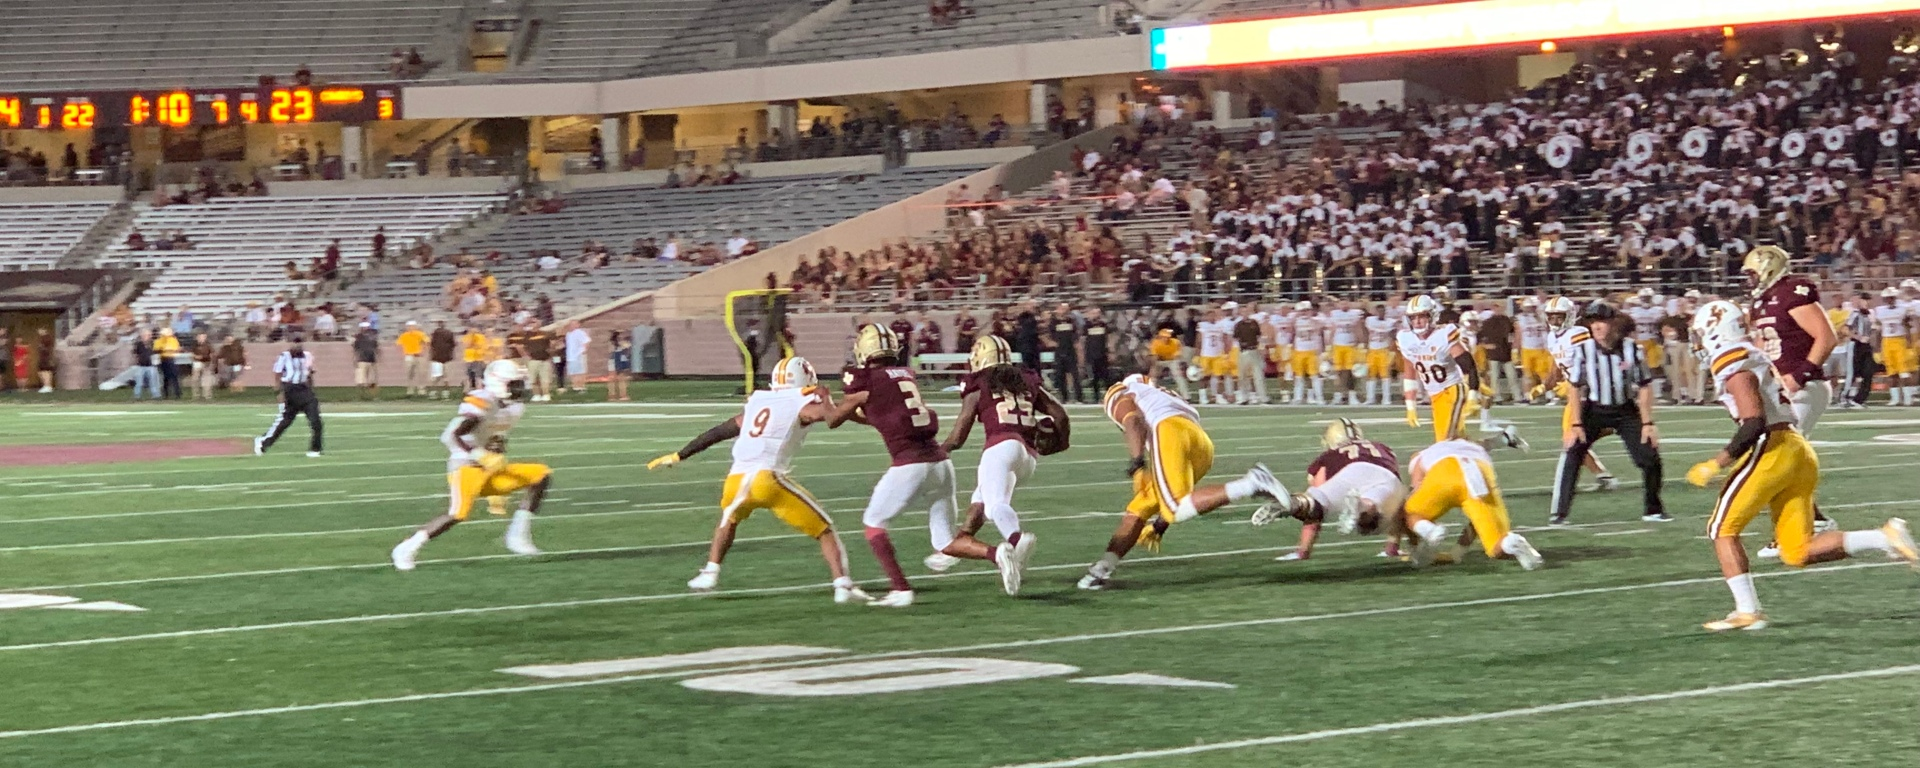 A Texas State player in a maroon jersey runs on a football field in between multiple Wyoming players in white and yellow uniforms at Jim Wacker Field in San Marcos, Texas with the fan and bands watching from the stands.